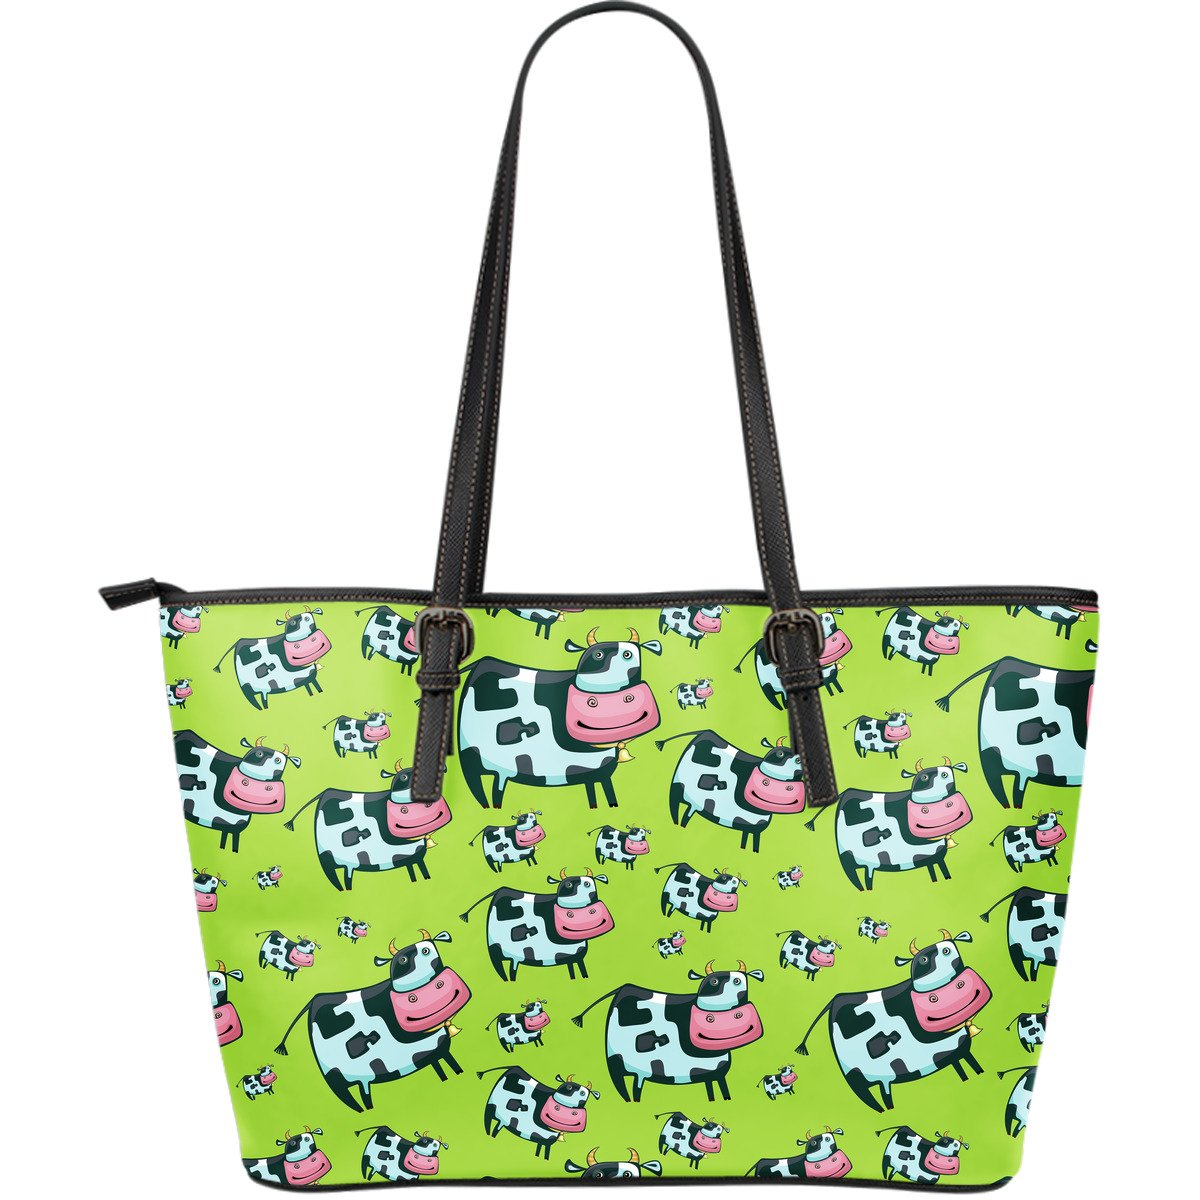 Cartoon Smiley Cow Pattern Print Leather Tote Bag GearFrost